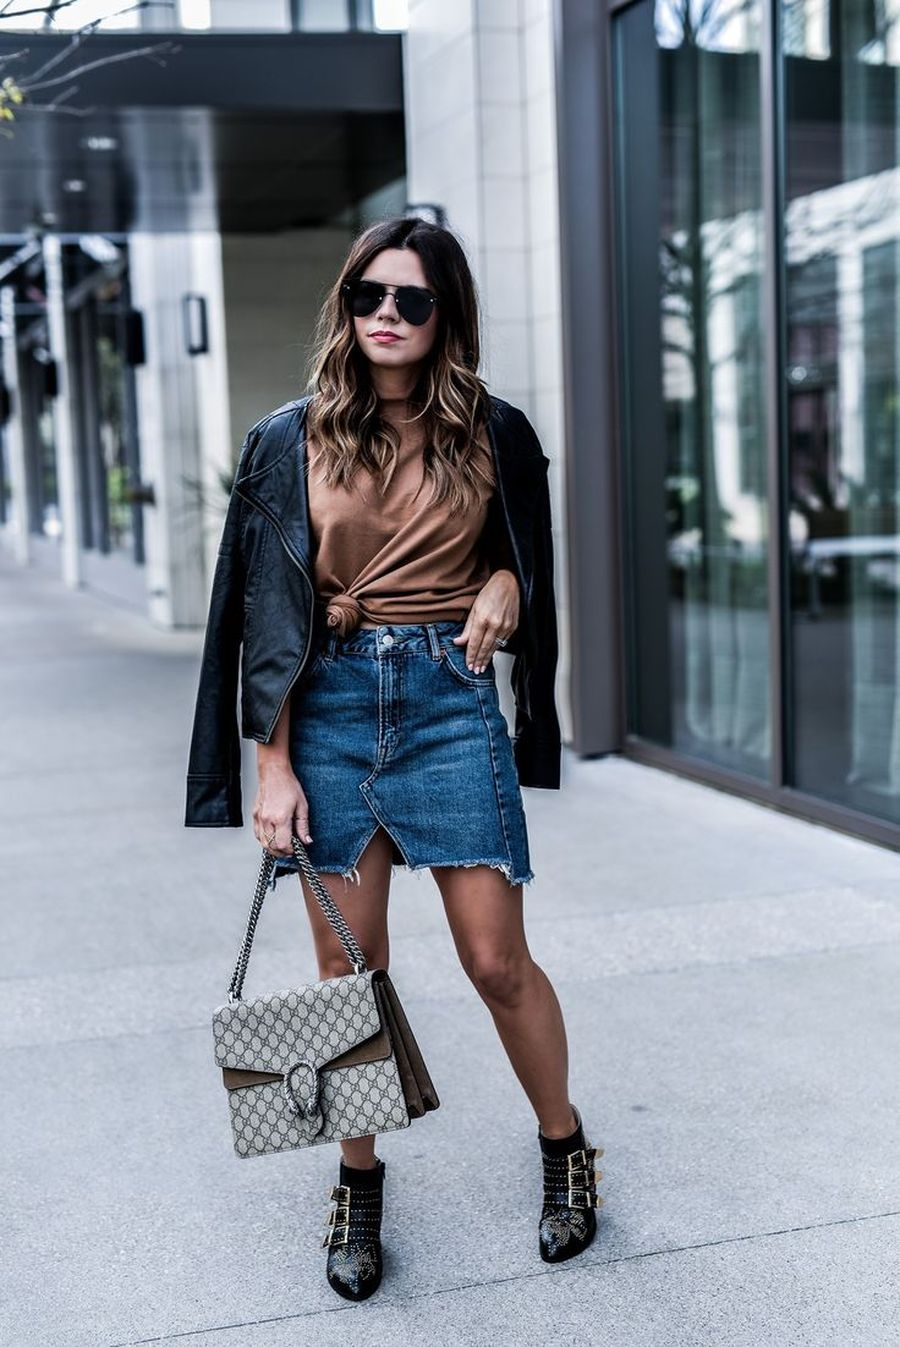 Inspiring skirt and boots combinations for fall and winter outfits 81